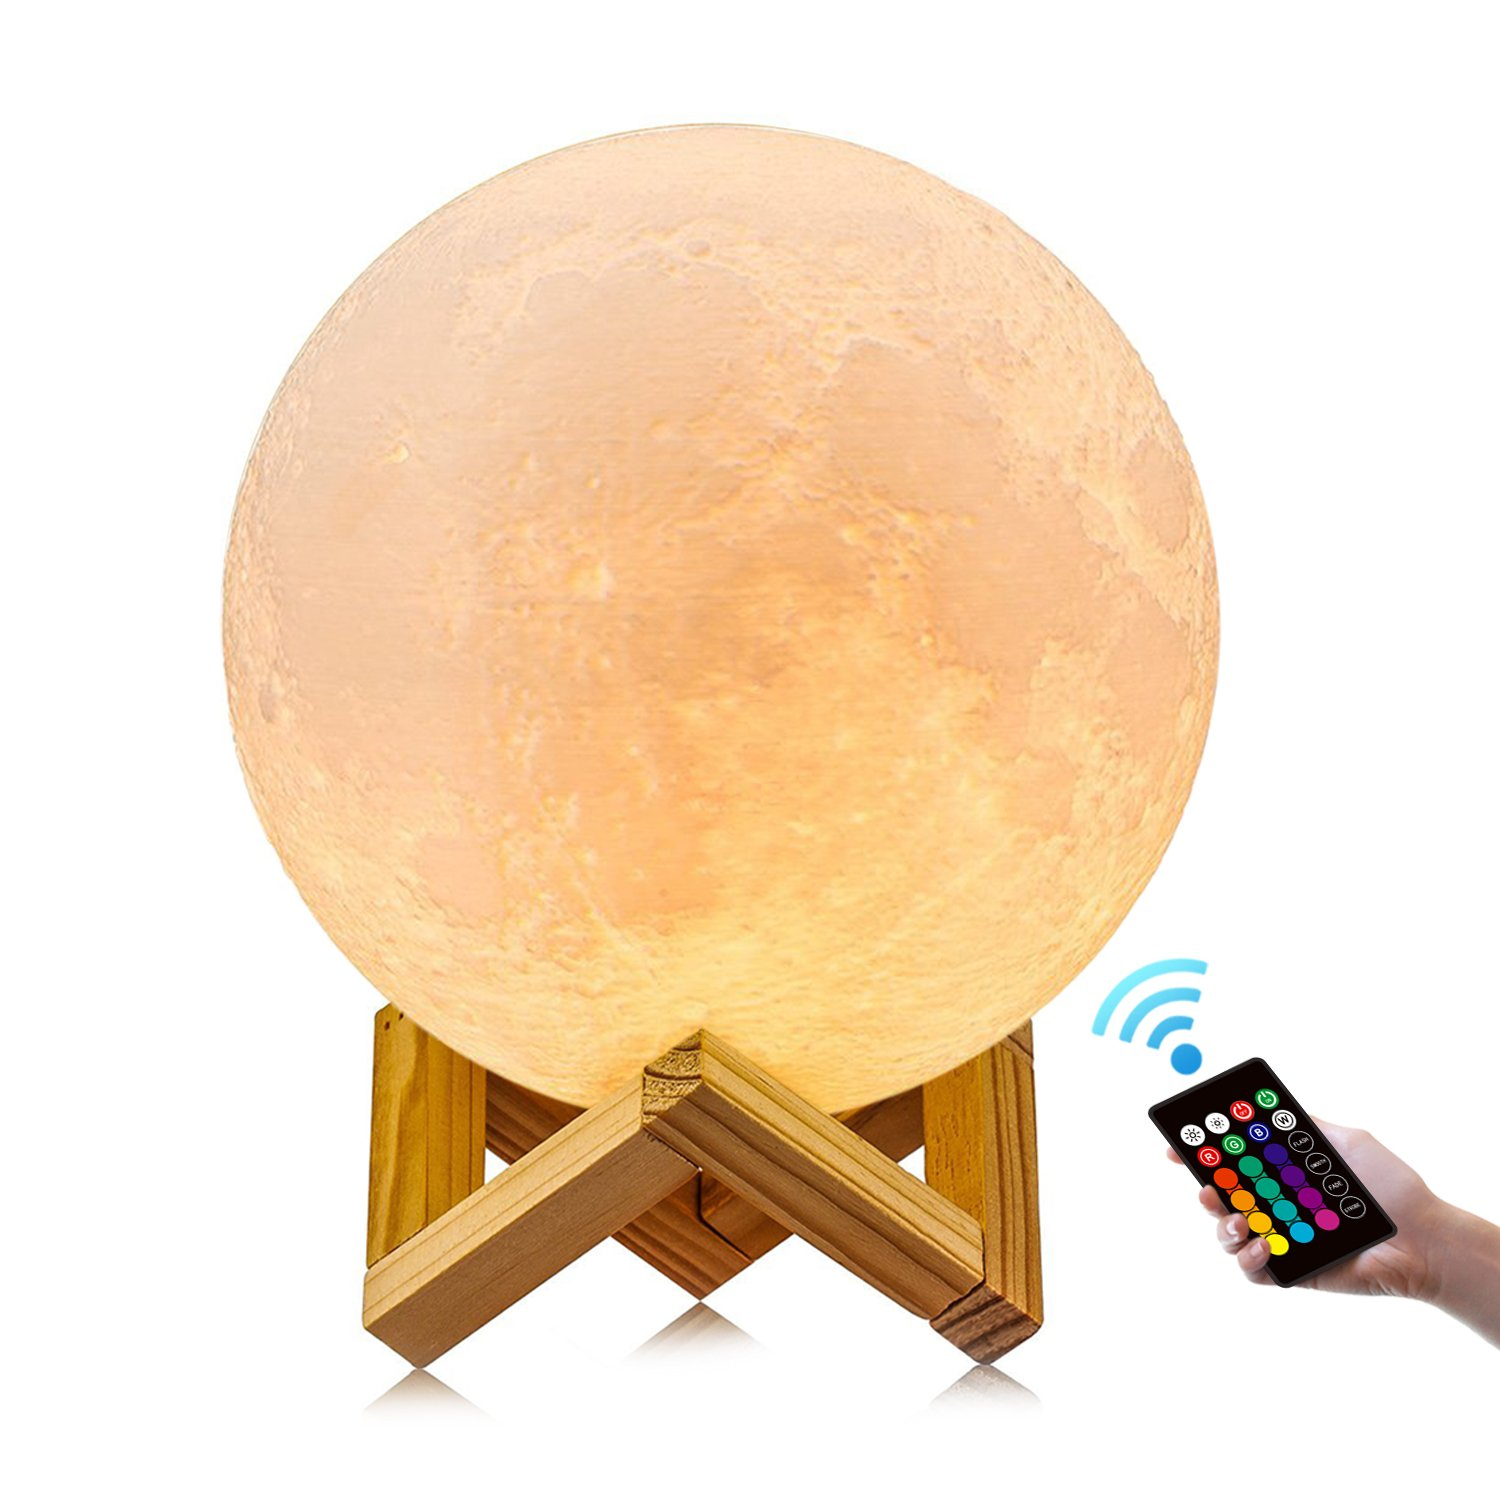 Moon lamp, GDPETS 16 Color 3D Printing Moon Led Night Light, Remote& Touch Control and Adjust Brightness& Rechargeable Home Decorative Light Lamps for Baby/Kids/Lover/Friends Gifts (7.9inch)